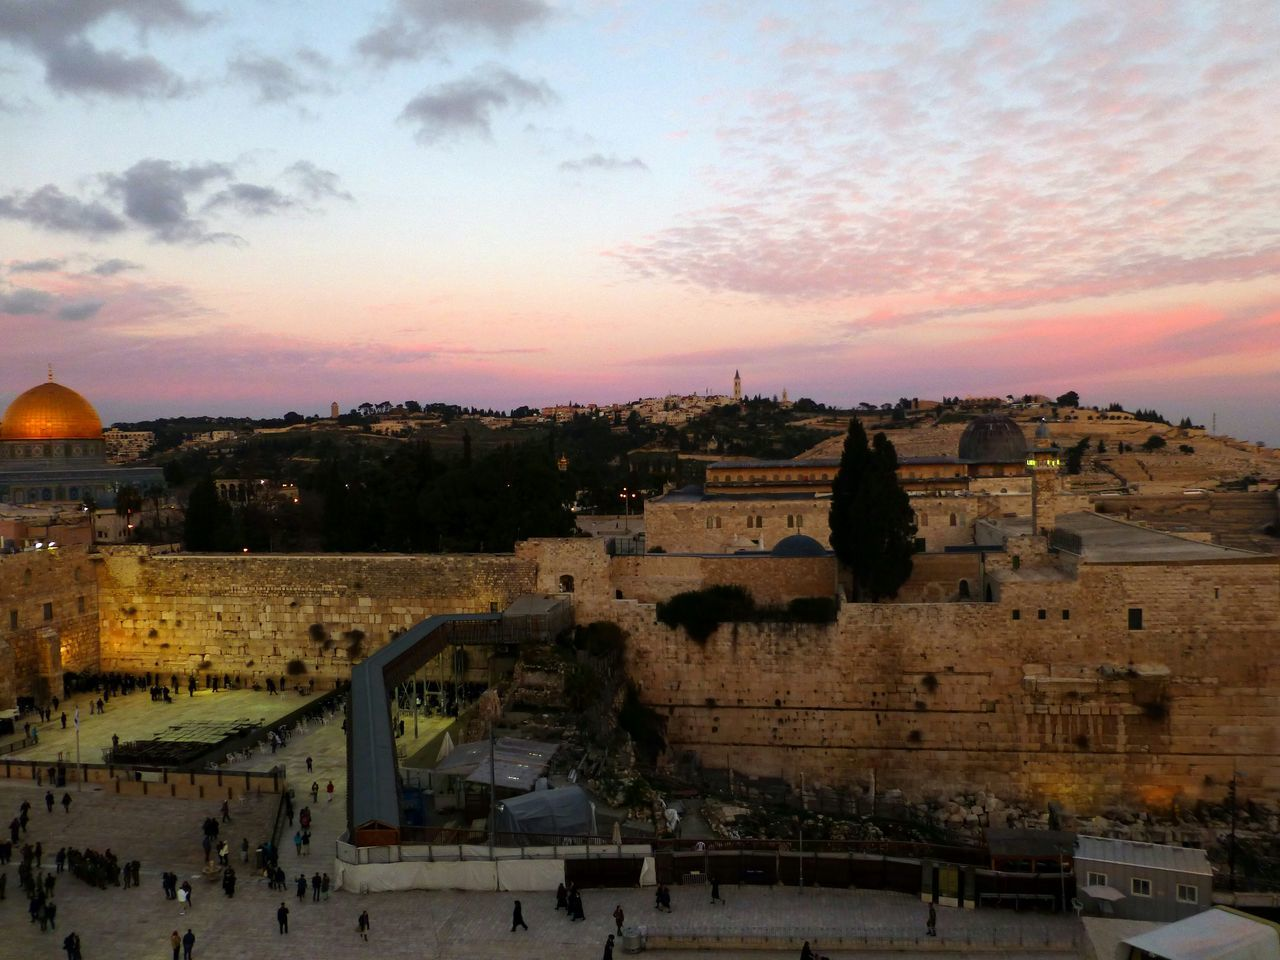 Sunset Sunset_collection Sunset And Clouds  Sunset Lovers Israel Jerusalem Israel Kotel Winter Holy Land Holy City Ancient Culture Ancient Beauty